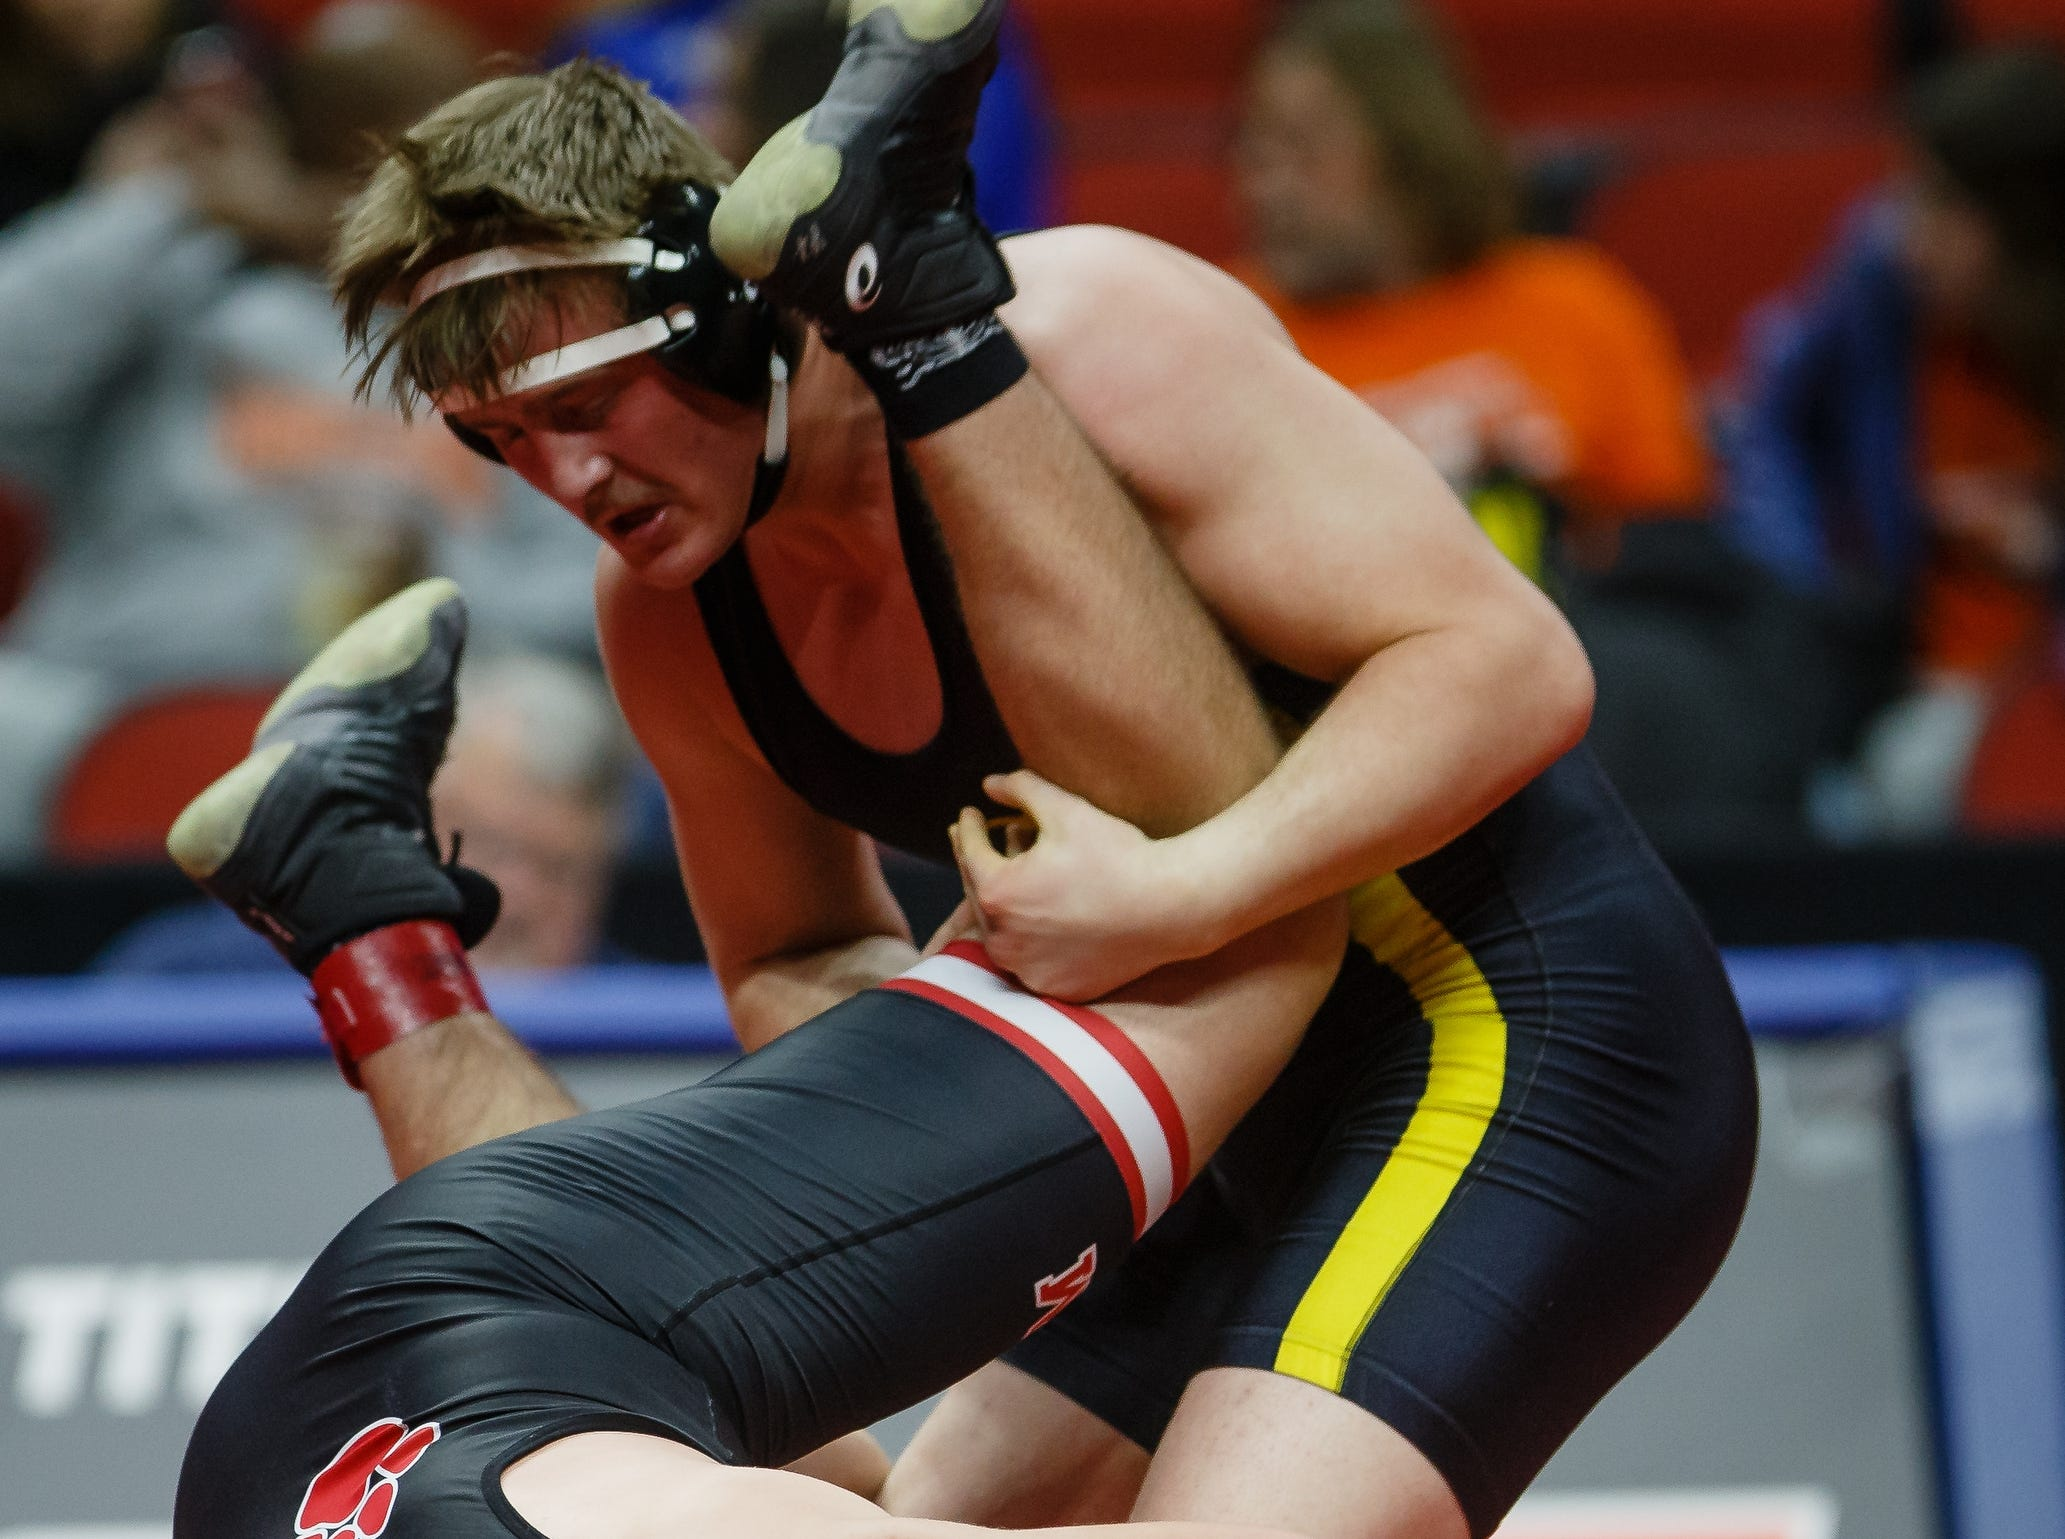 Kade Hambly of Clear Lake wrestles Kaden Sutton of ADEM during their class 2A 220 pound state championship semi-final match on Friday, Feb. 15, 2019 in Des Moines. Sutton advances to the finals.